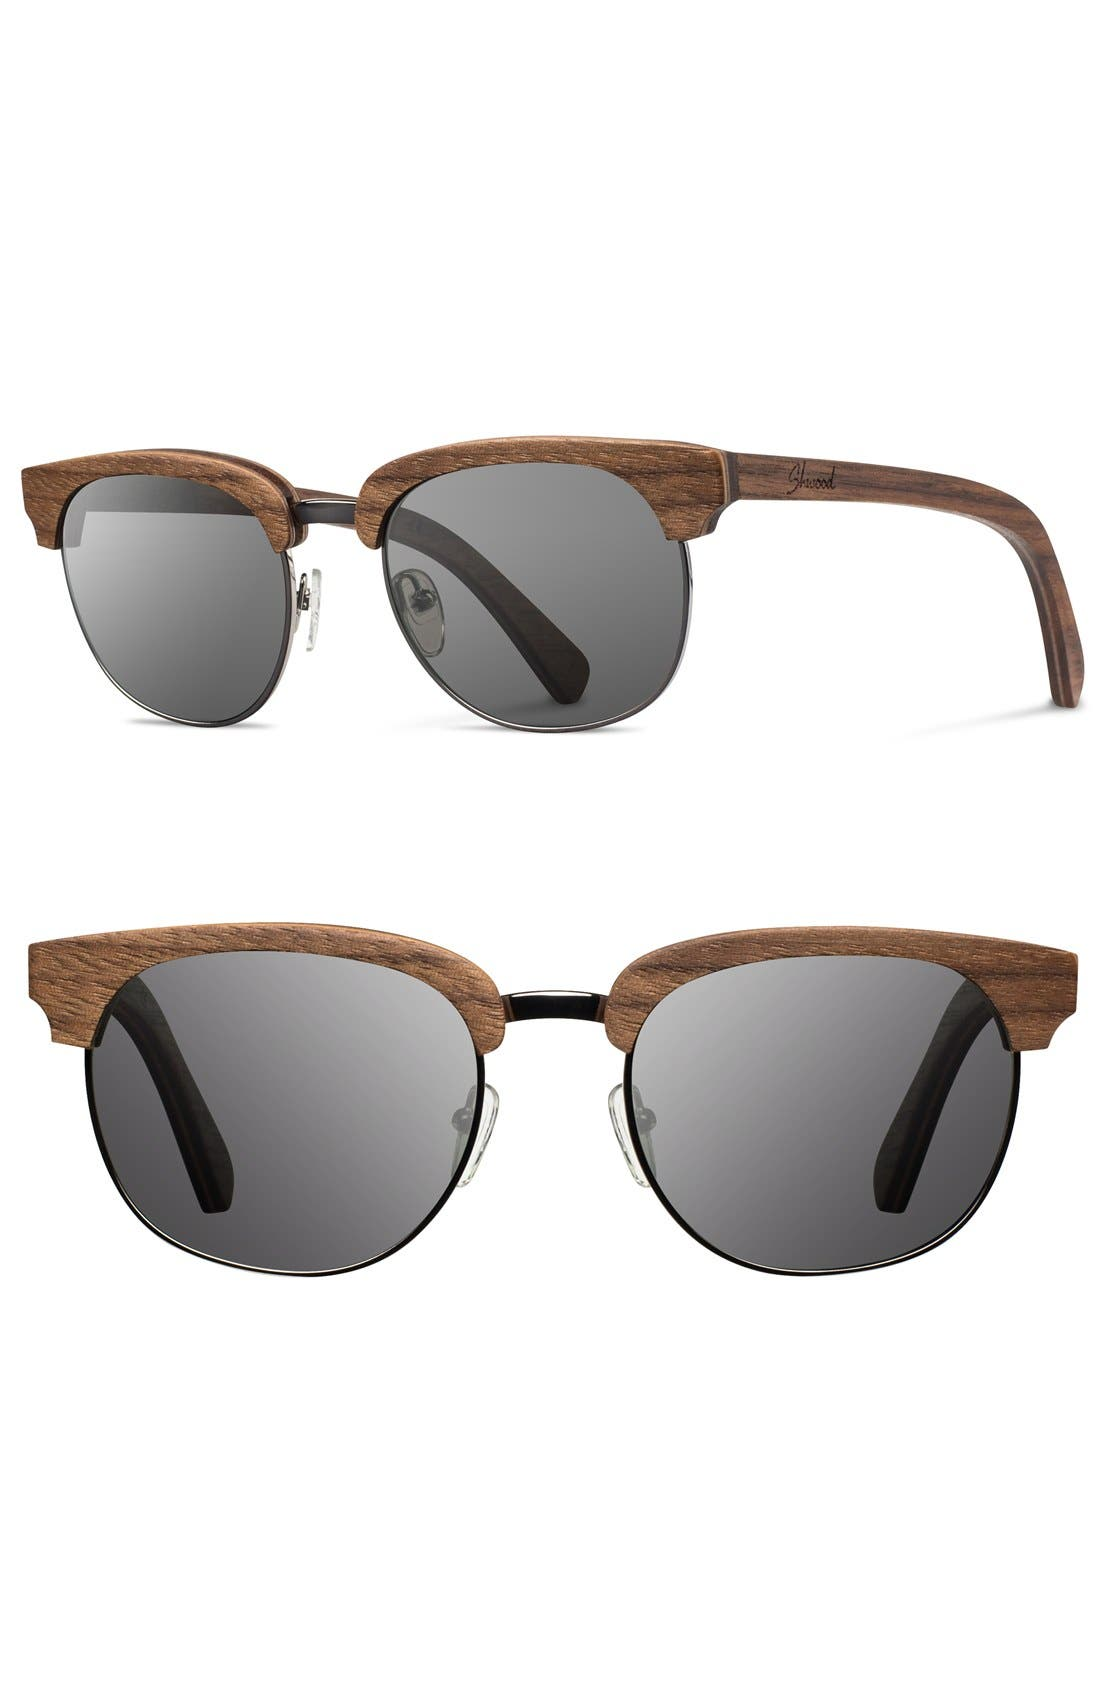 Main Image - Shwood 'Eugene' 54mm Wood Sunglasses